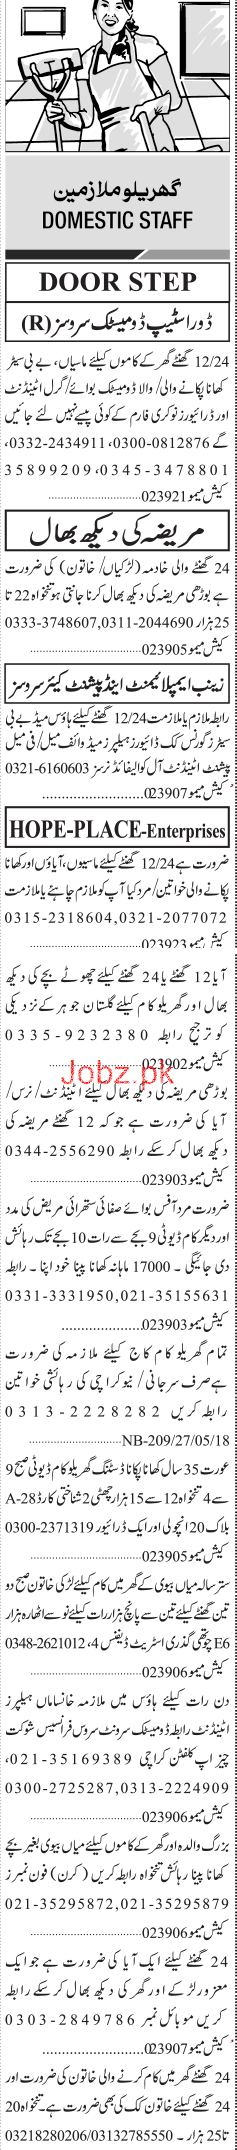 LTV Drivers, House Maid, Cook, House Patient Care Wanted